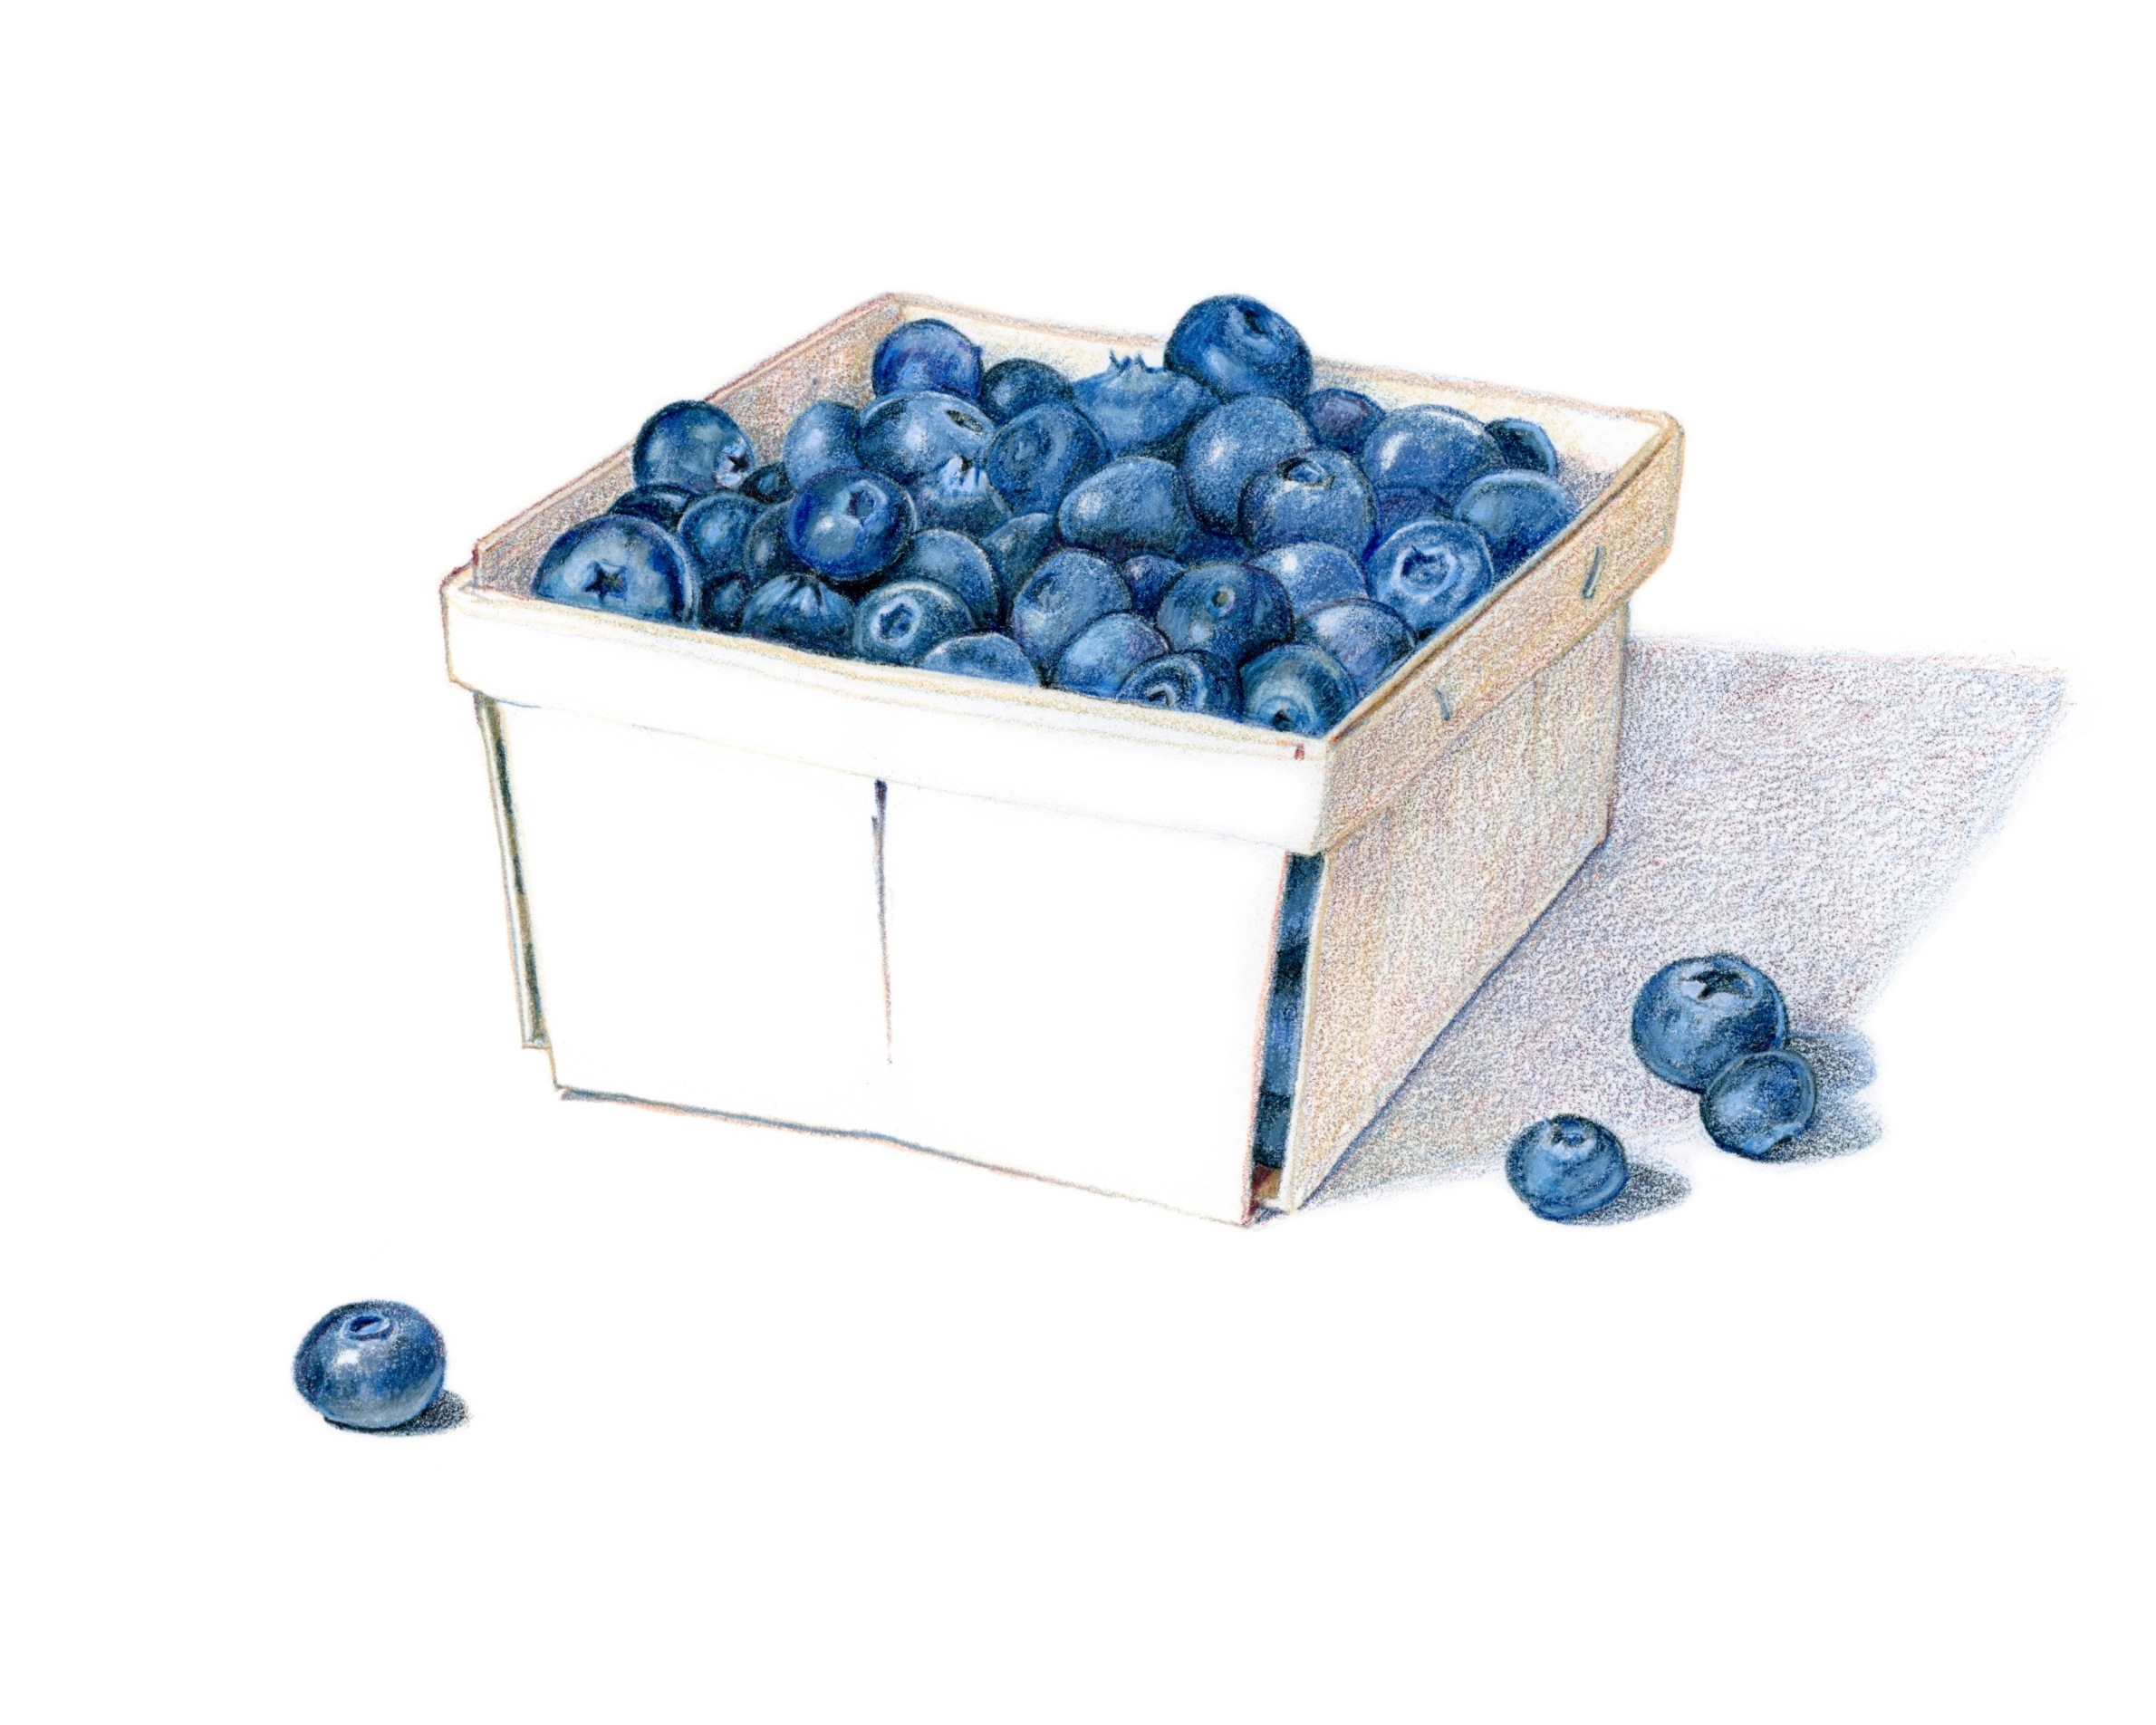 A basket of blueberries - Colored pencil